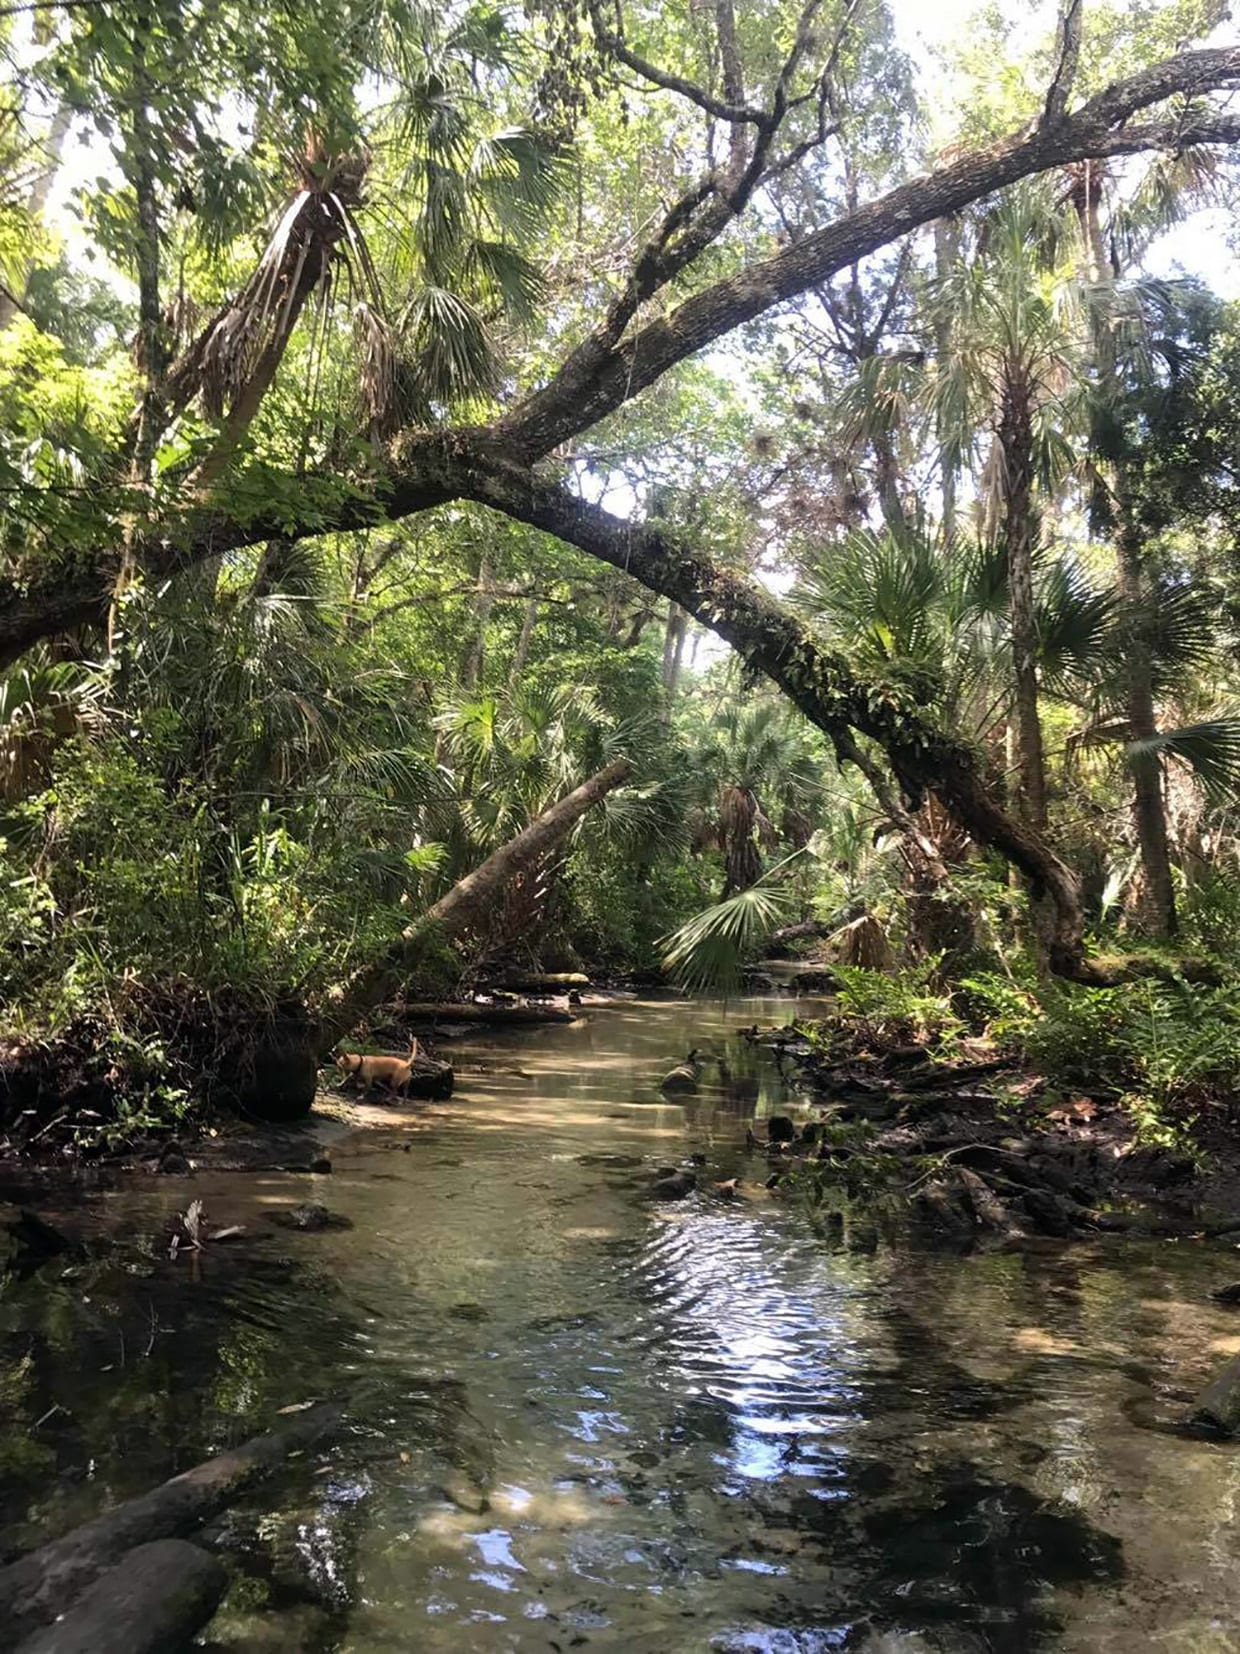 Chassahowitzka River Keepers and Homosassa River One-Rake-at-a-Time Working Together to Protect and Restore our Rivers